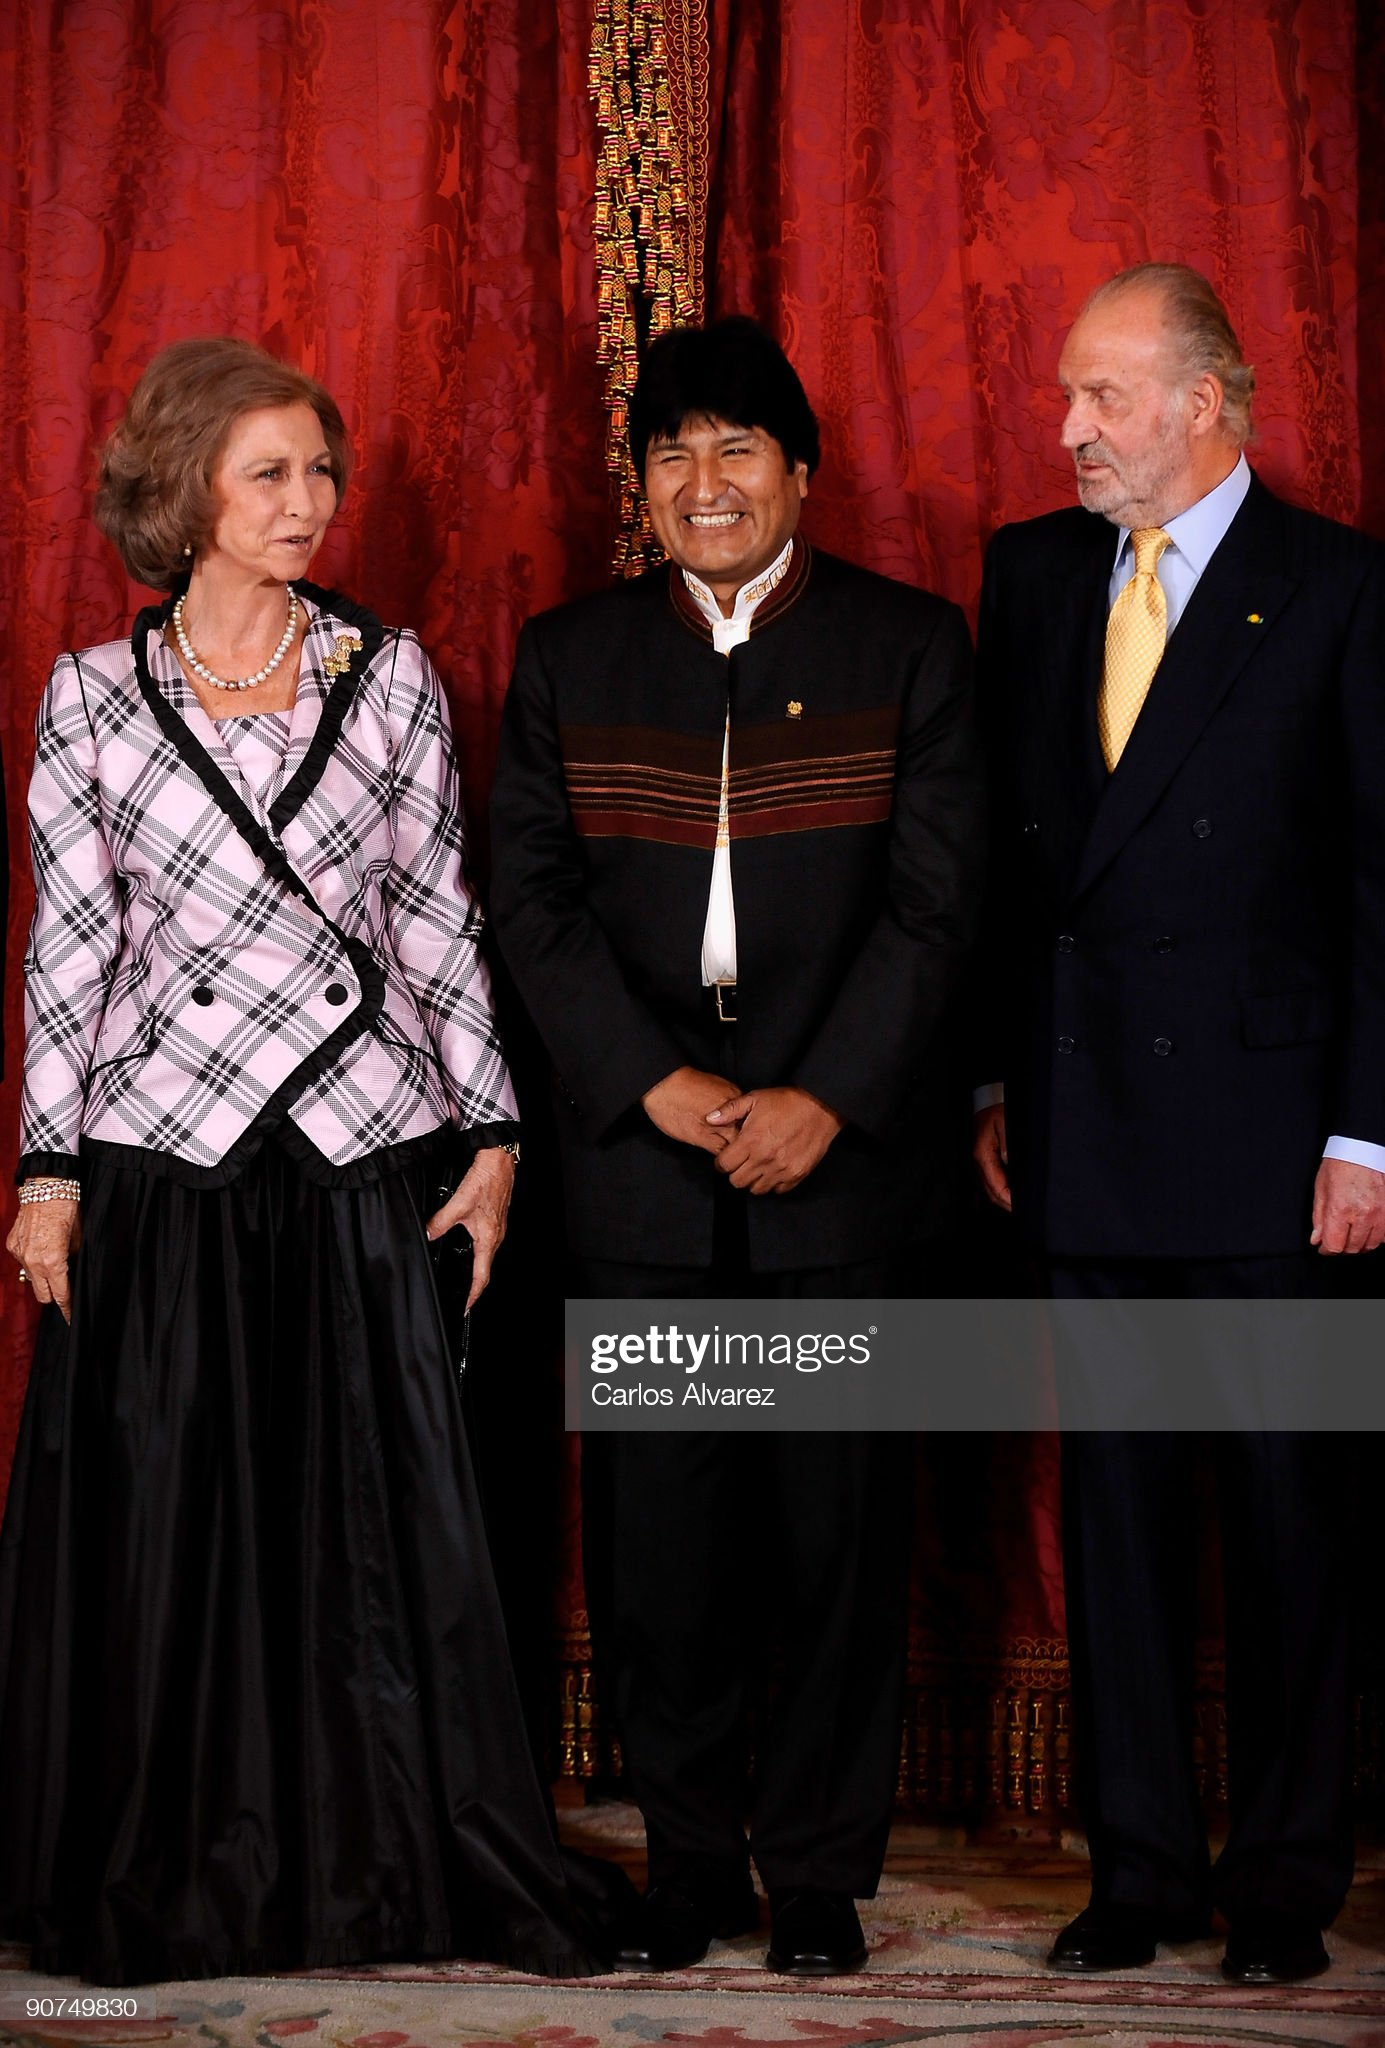 Spanish Royals Host Gala Dinner Honouring Bolivia's President Evo Morales : News Photo